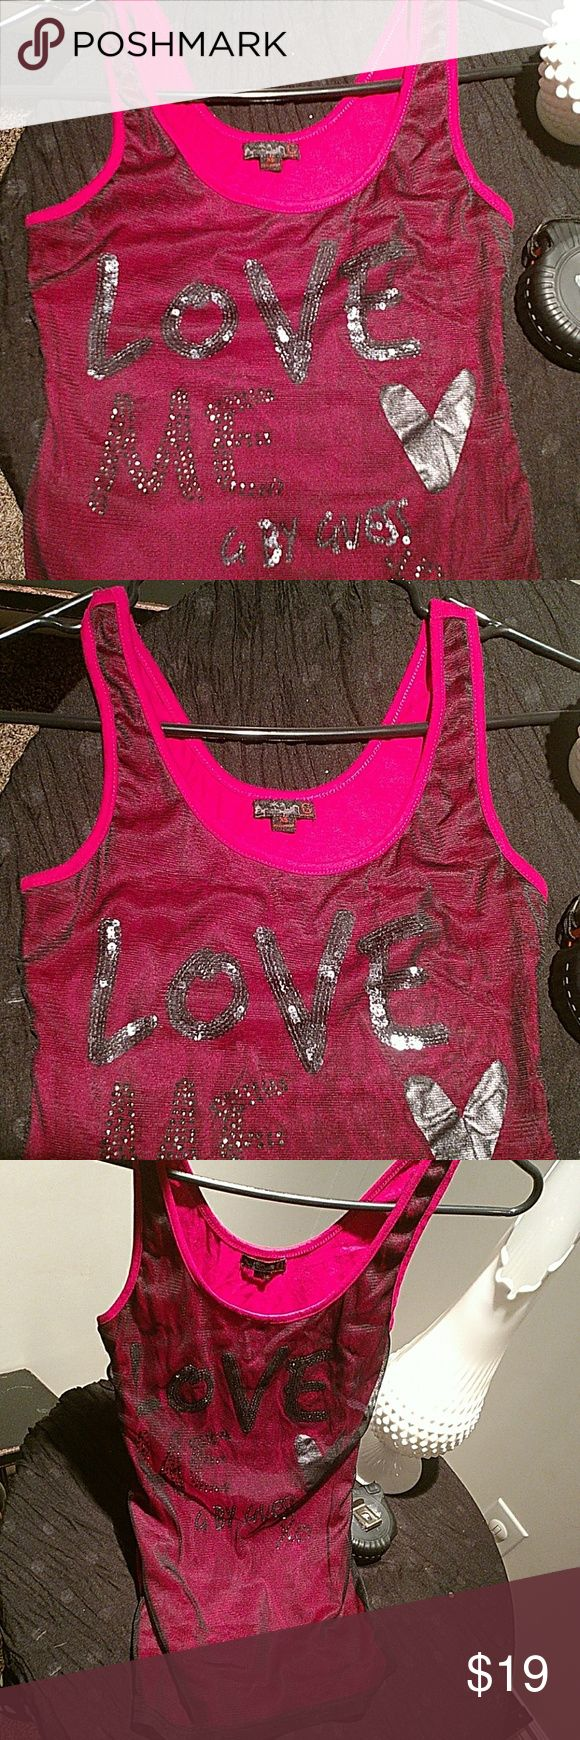 "Guess tank top Sequined ""love"", rhinestone ""me by guess xx"" black chiffon overlay. Guess Tops Tank Tops"